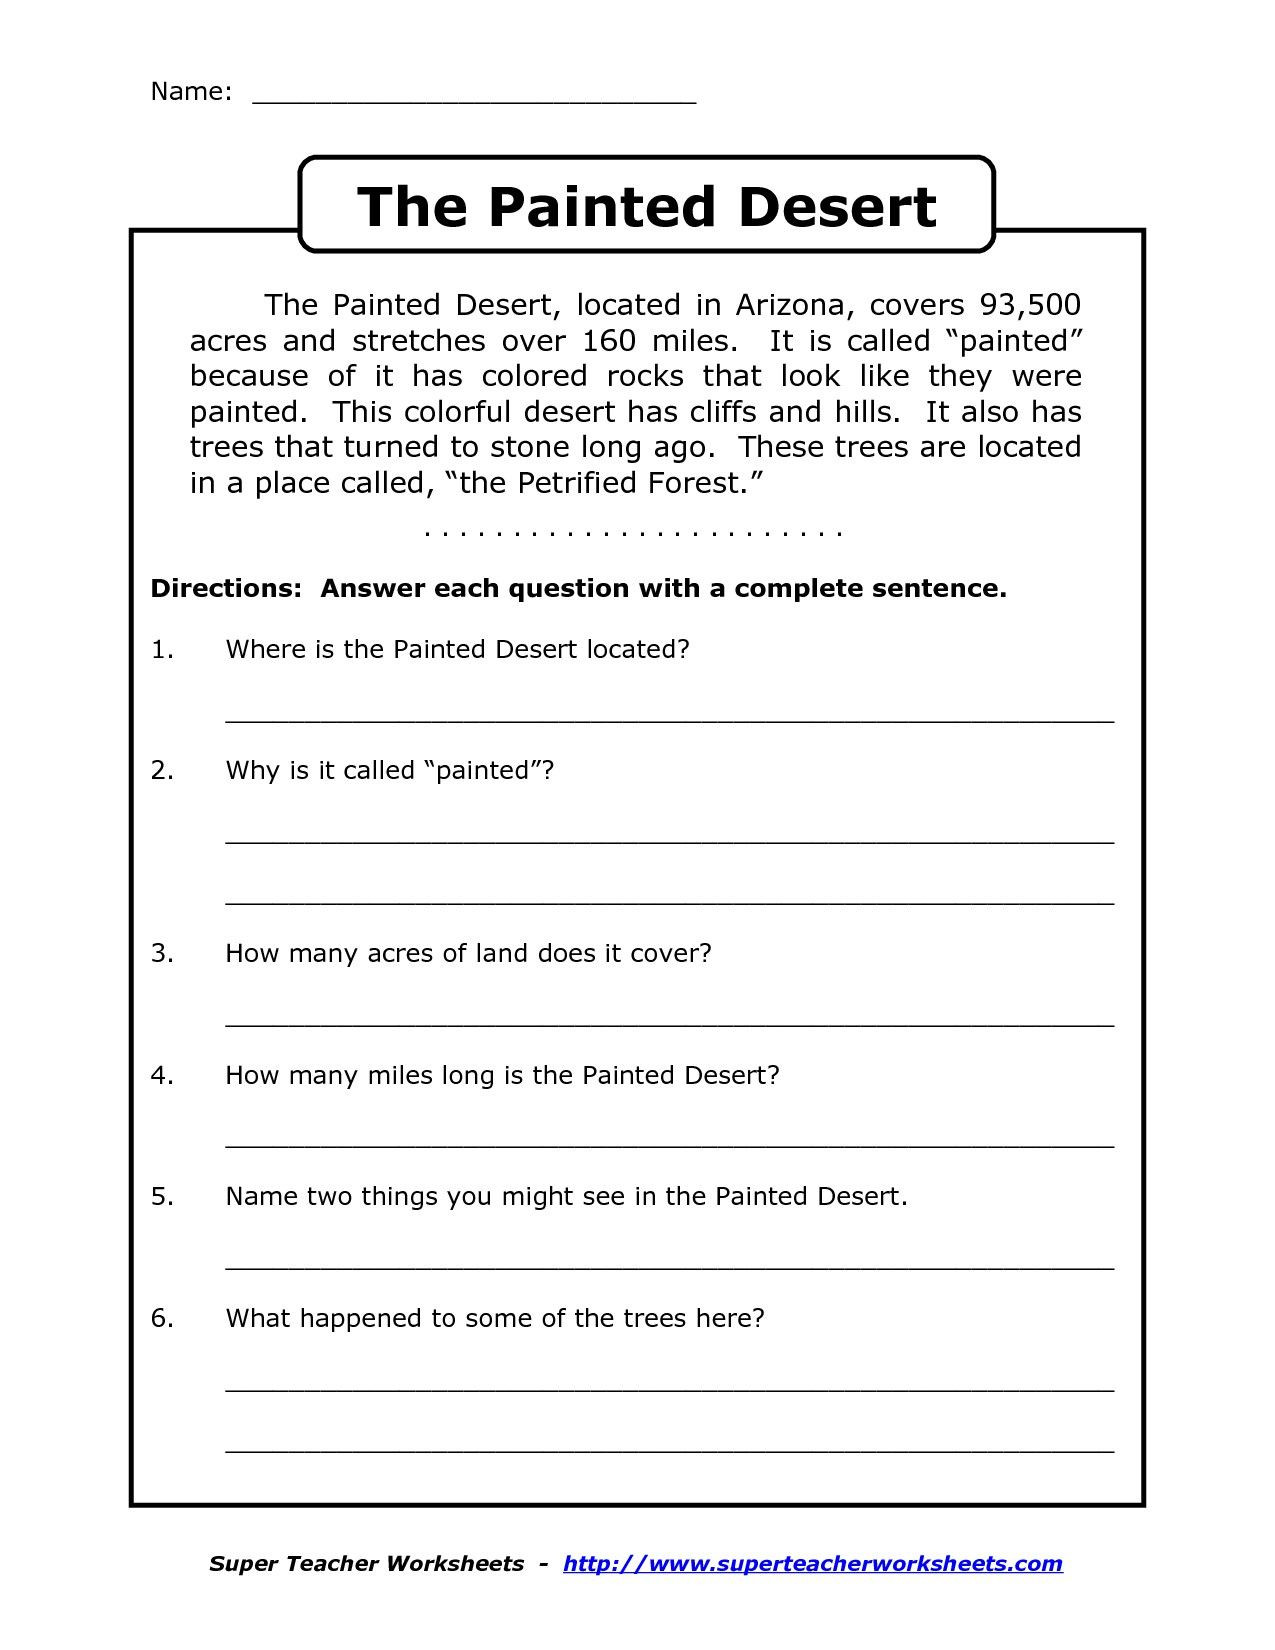 Context Clues Worksheets 1st Grade Prehension Worksheet for 1st Grade Y2 P3 the Painted